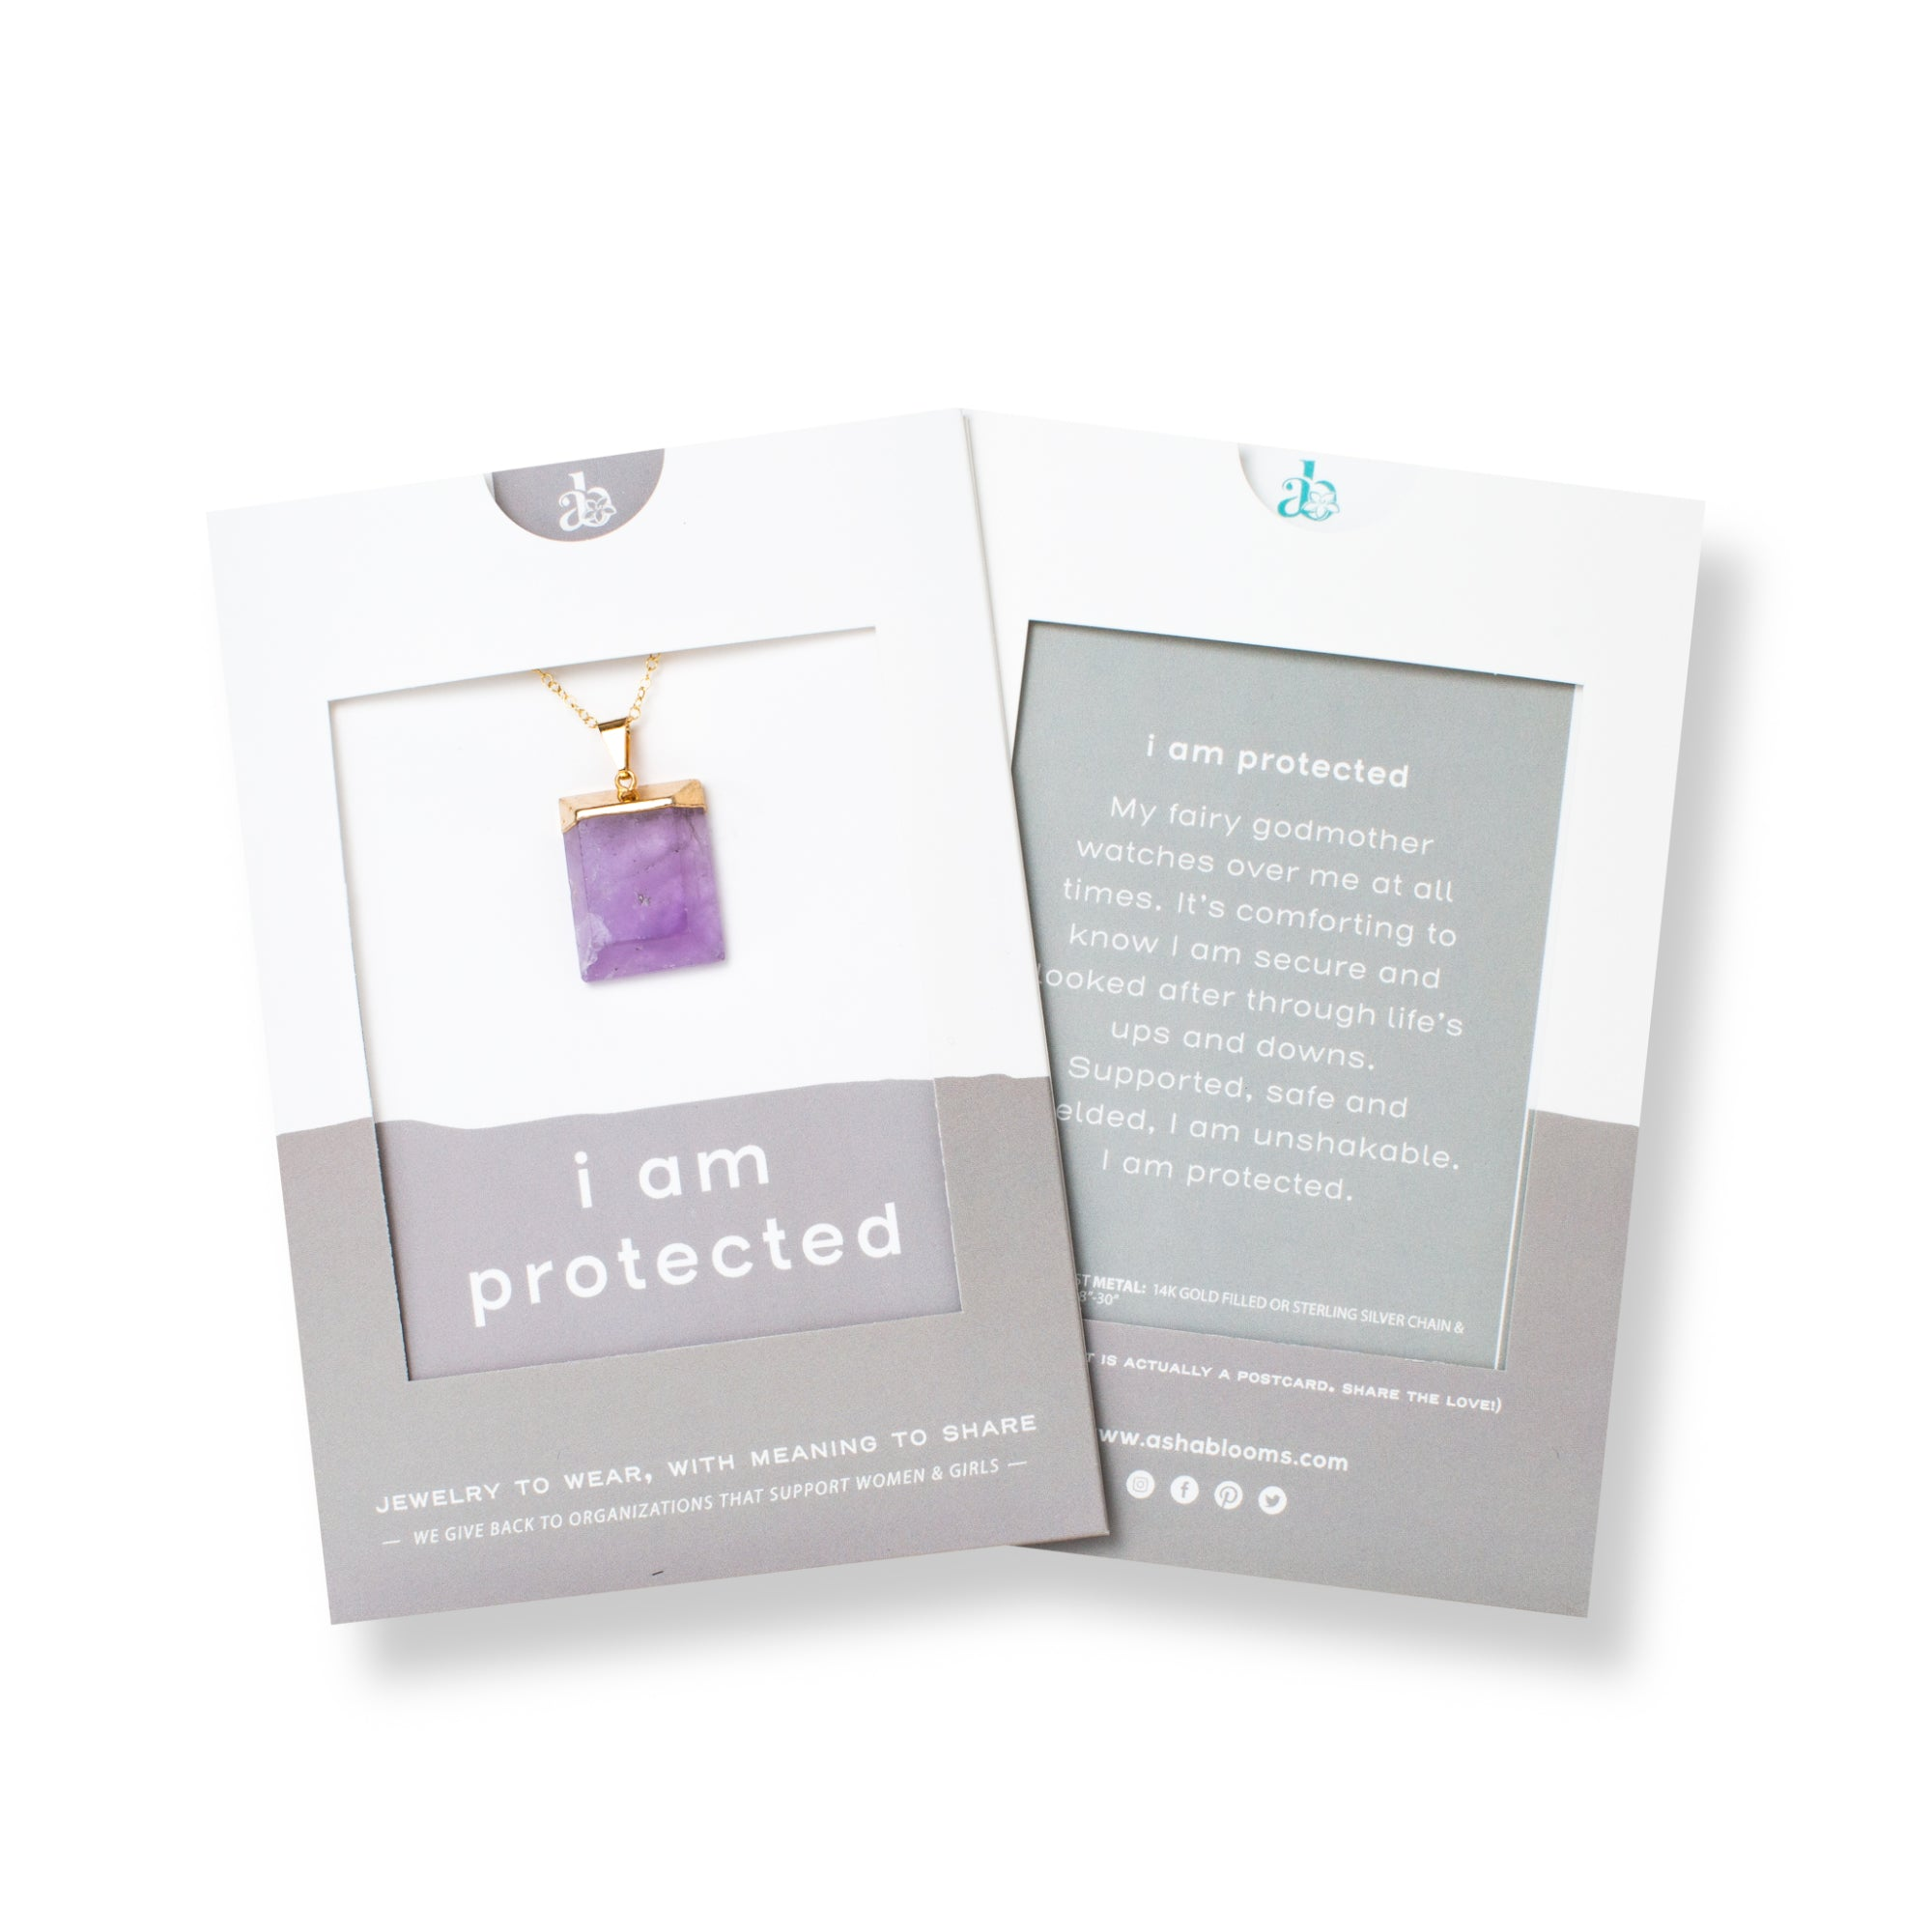 Rectangular Purple Amethyst and Gold Long Necklace 'I Am Protected' in Gray Gift Message Sleeve Packaging Photo by Asha Blooms